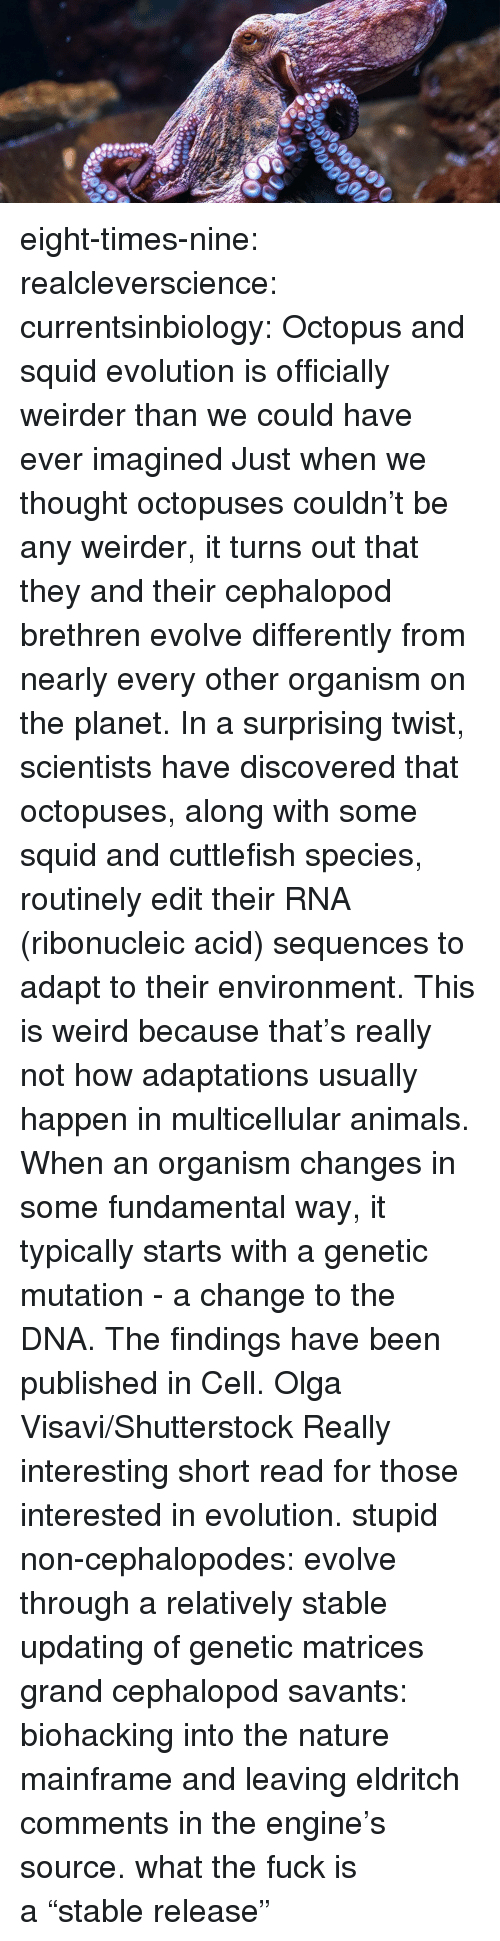 "organism: eight-times-nine: realcleverscience:  currentsinbiology:  Octopus and squid evolution is officially weirder than we could have ever imagined  Just when we thought octopuses couldn't be any weirder, it turns out that they and their cephalopod brethren evolve differently from nearly every other organism on the planet. In a surprising twist, scientists have discovered that octopuses,  along with some squid and cuttlefish species, routinely edit their RNA  (ribonucleic acid) sequences to adapt to their environment. This is weird because that's really not how adaptations usually  happen in multicellular animals. When an organism changes in some  fundamental way, it typically starts with a genetic mutation - a change  to the DNA.  The findings have been published in Cell.   Olga Visavi/Shutterstock     Really interesting short read for those interested in evolution.  stupid non-cephalopodes: evolve through a relatively stable updating of genetic matrices grand cephalopod savants: biohacking into the nature mainframe and leaving eldritch comments in the engine's source. what the fuck is a ""stable release"""